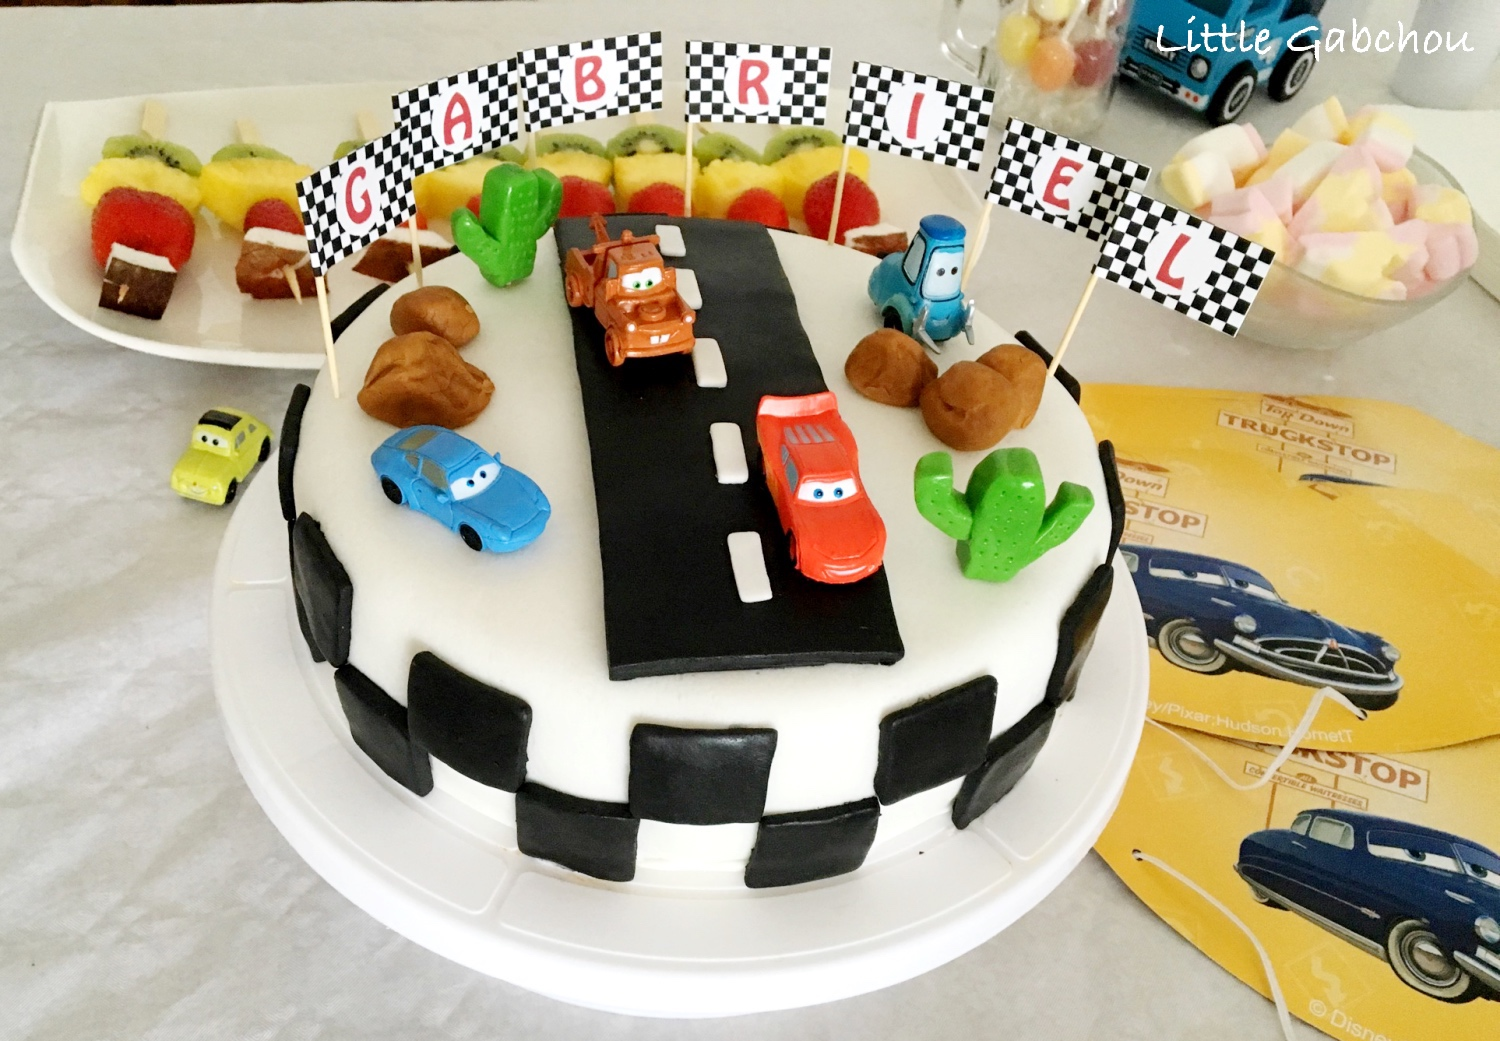 cake design g teau d 39 anniversaire sur le th me de cars. Black Bedroom Furniture Sets. Home Design Ideas